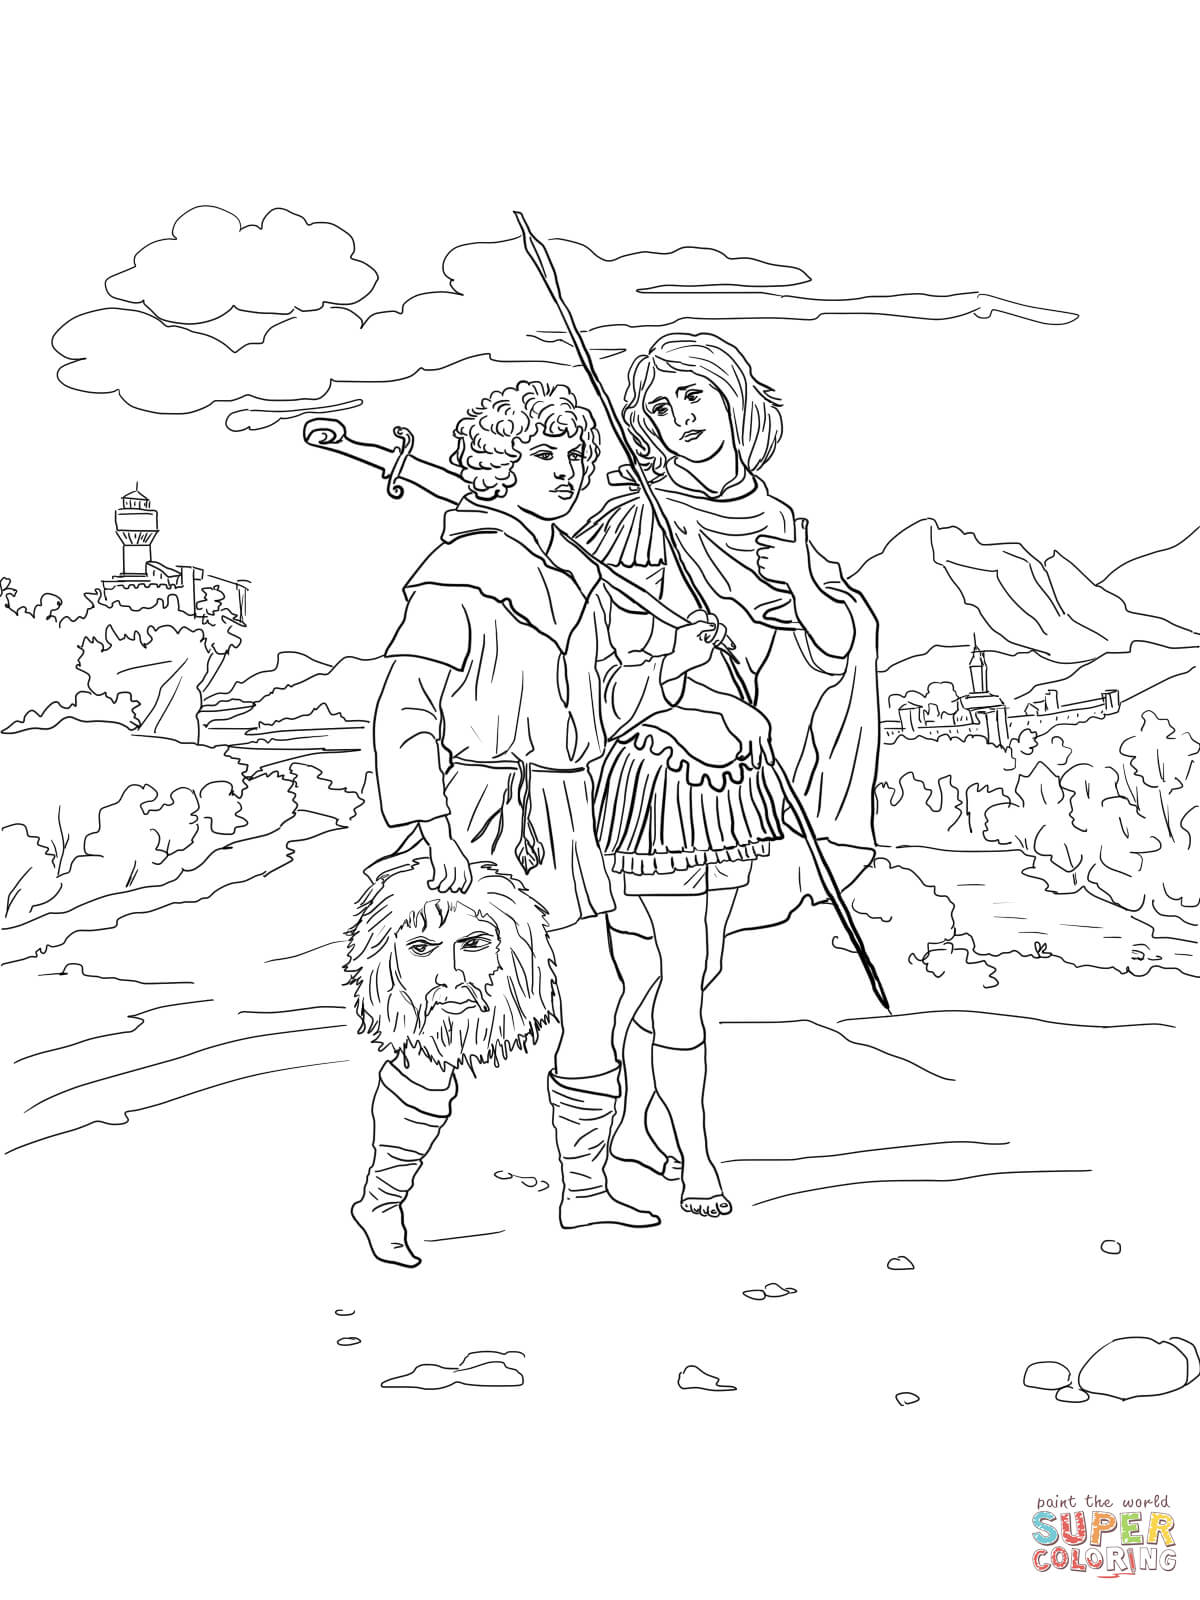 david coloring free home dc7jzmkzi gifts for sudents books color blending markers coloring pages David Coloring Page